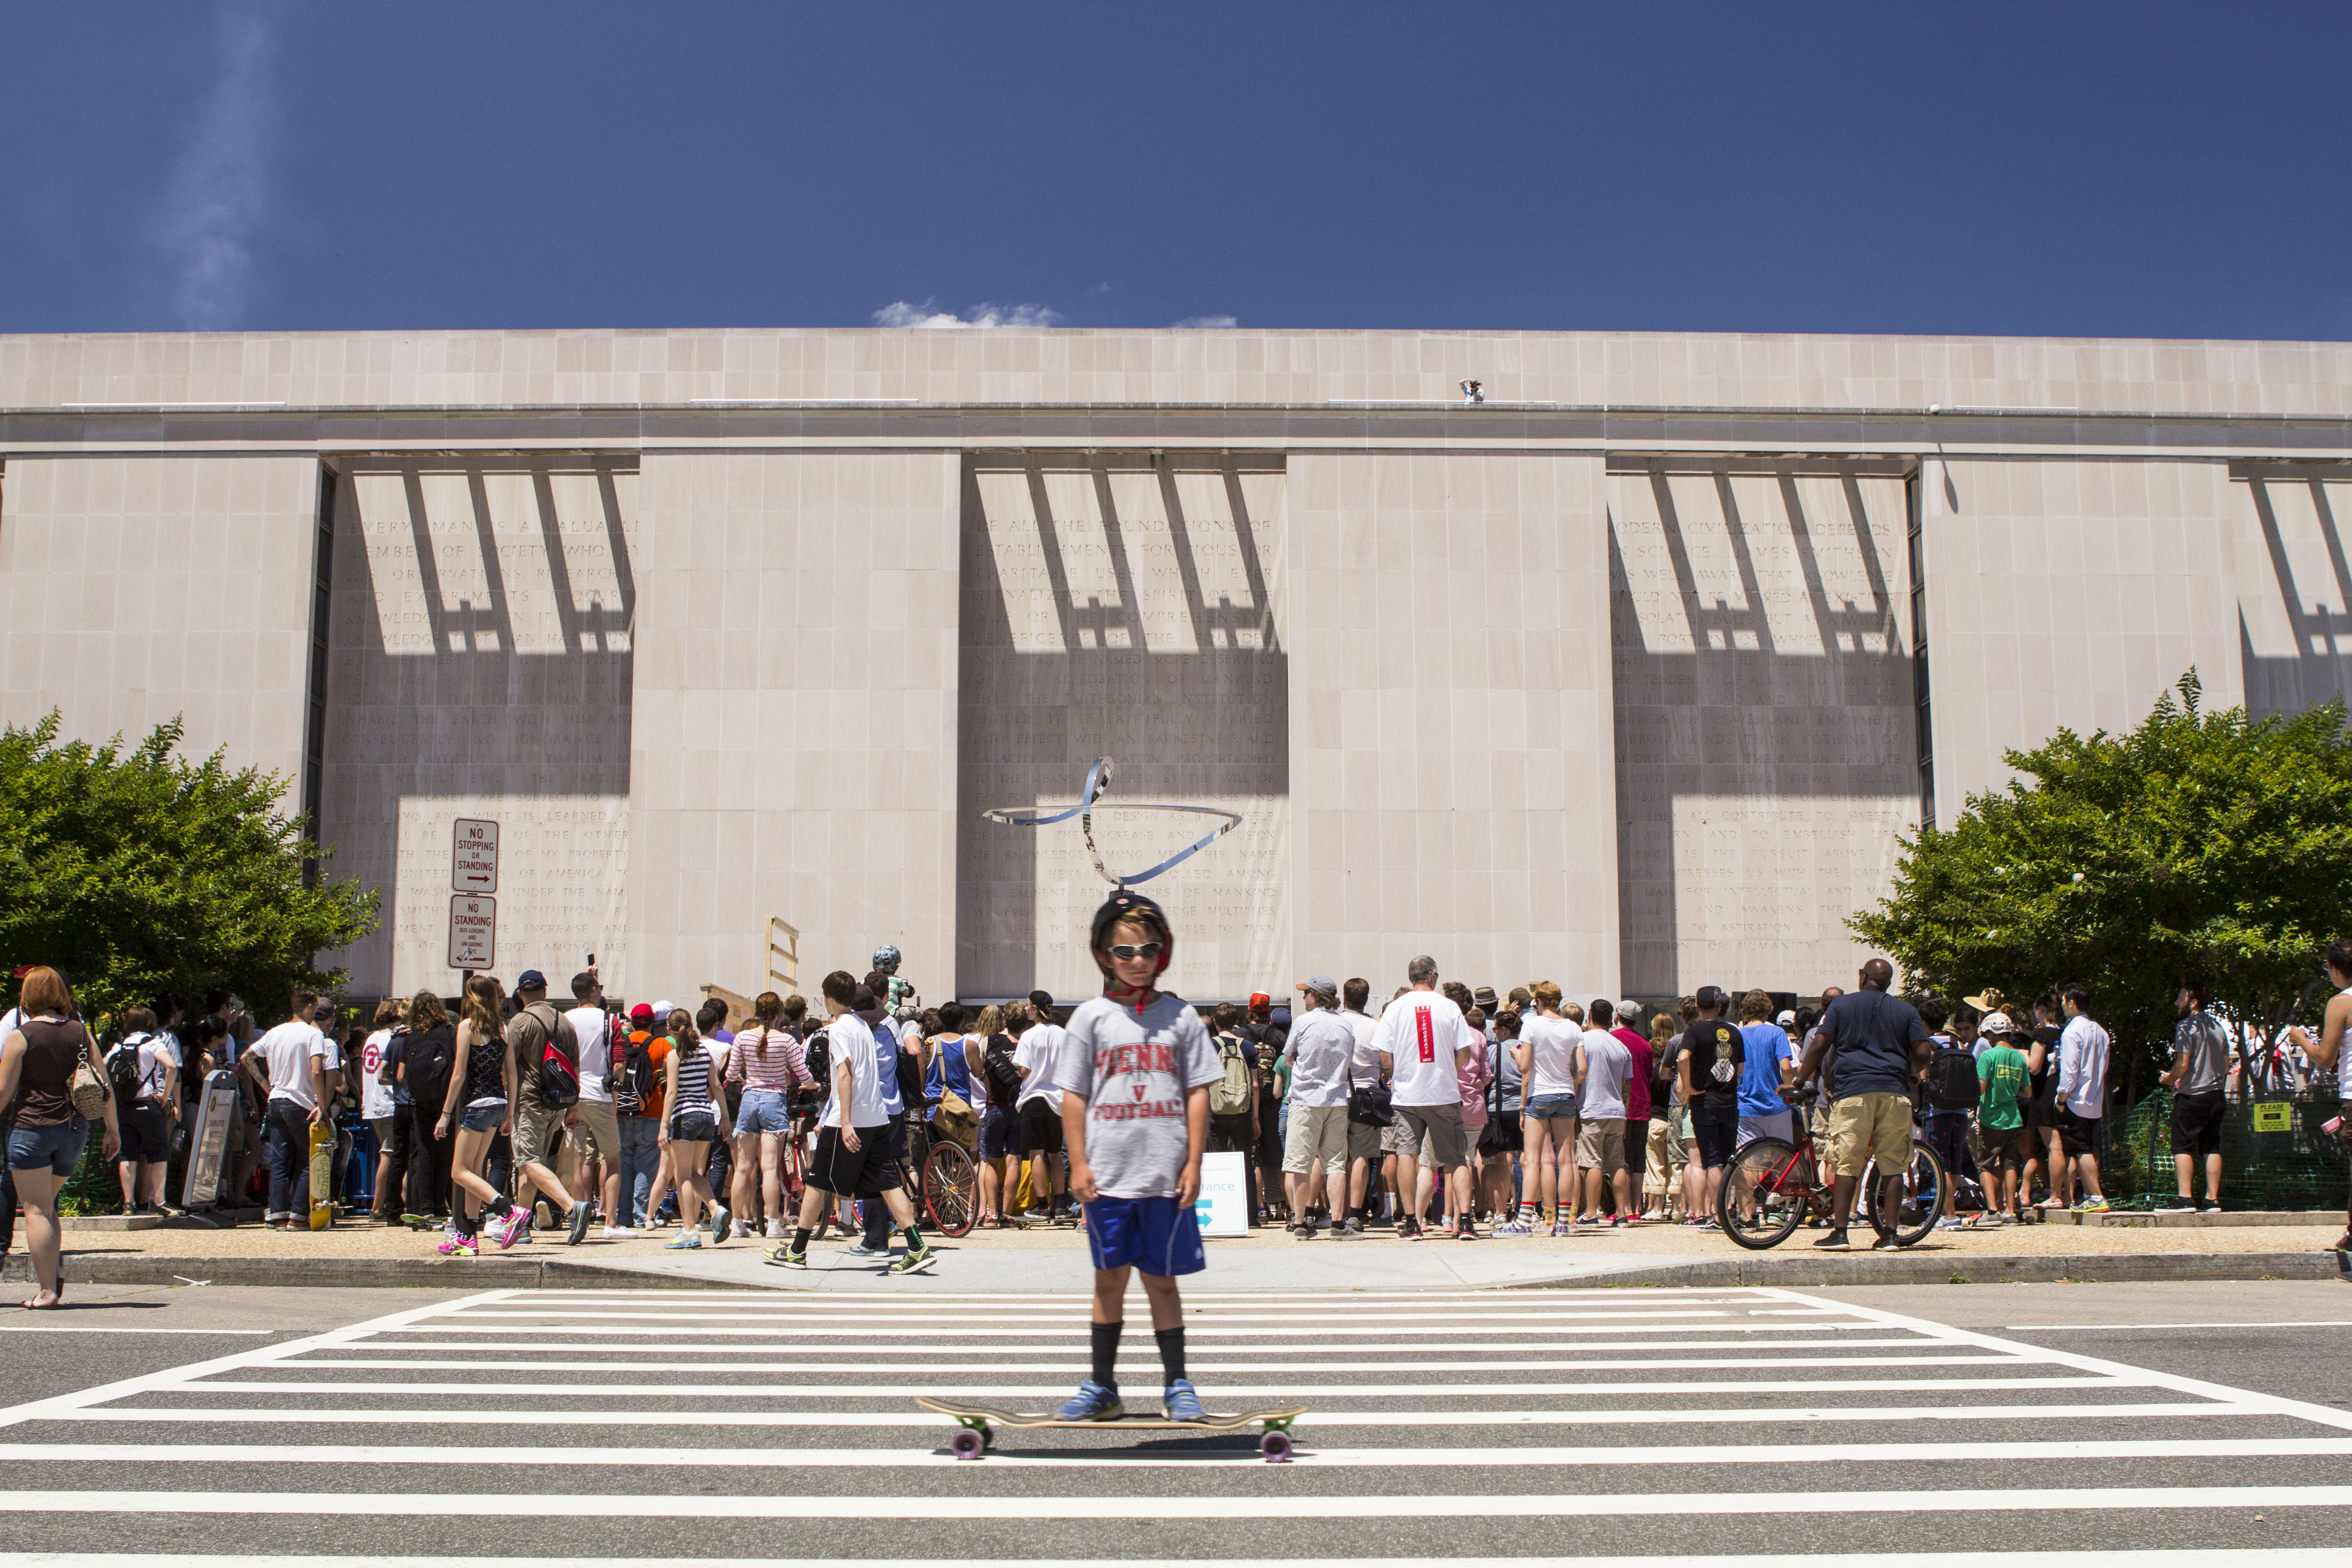 A young boy skateboards in front of the National Museum of American History.